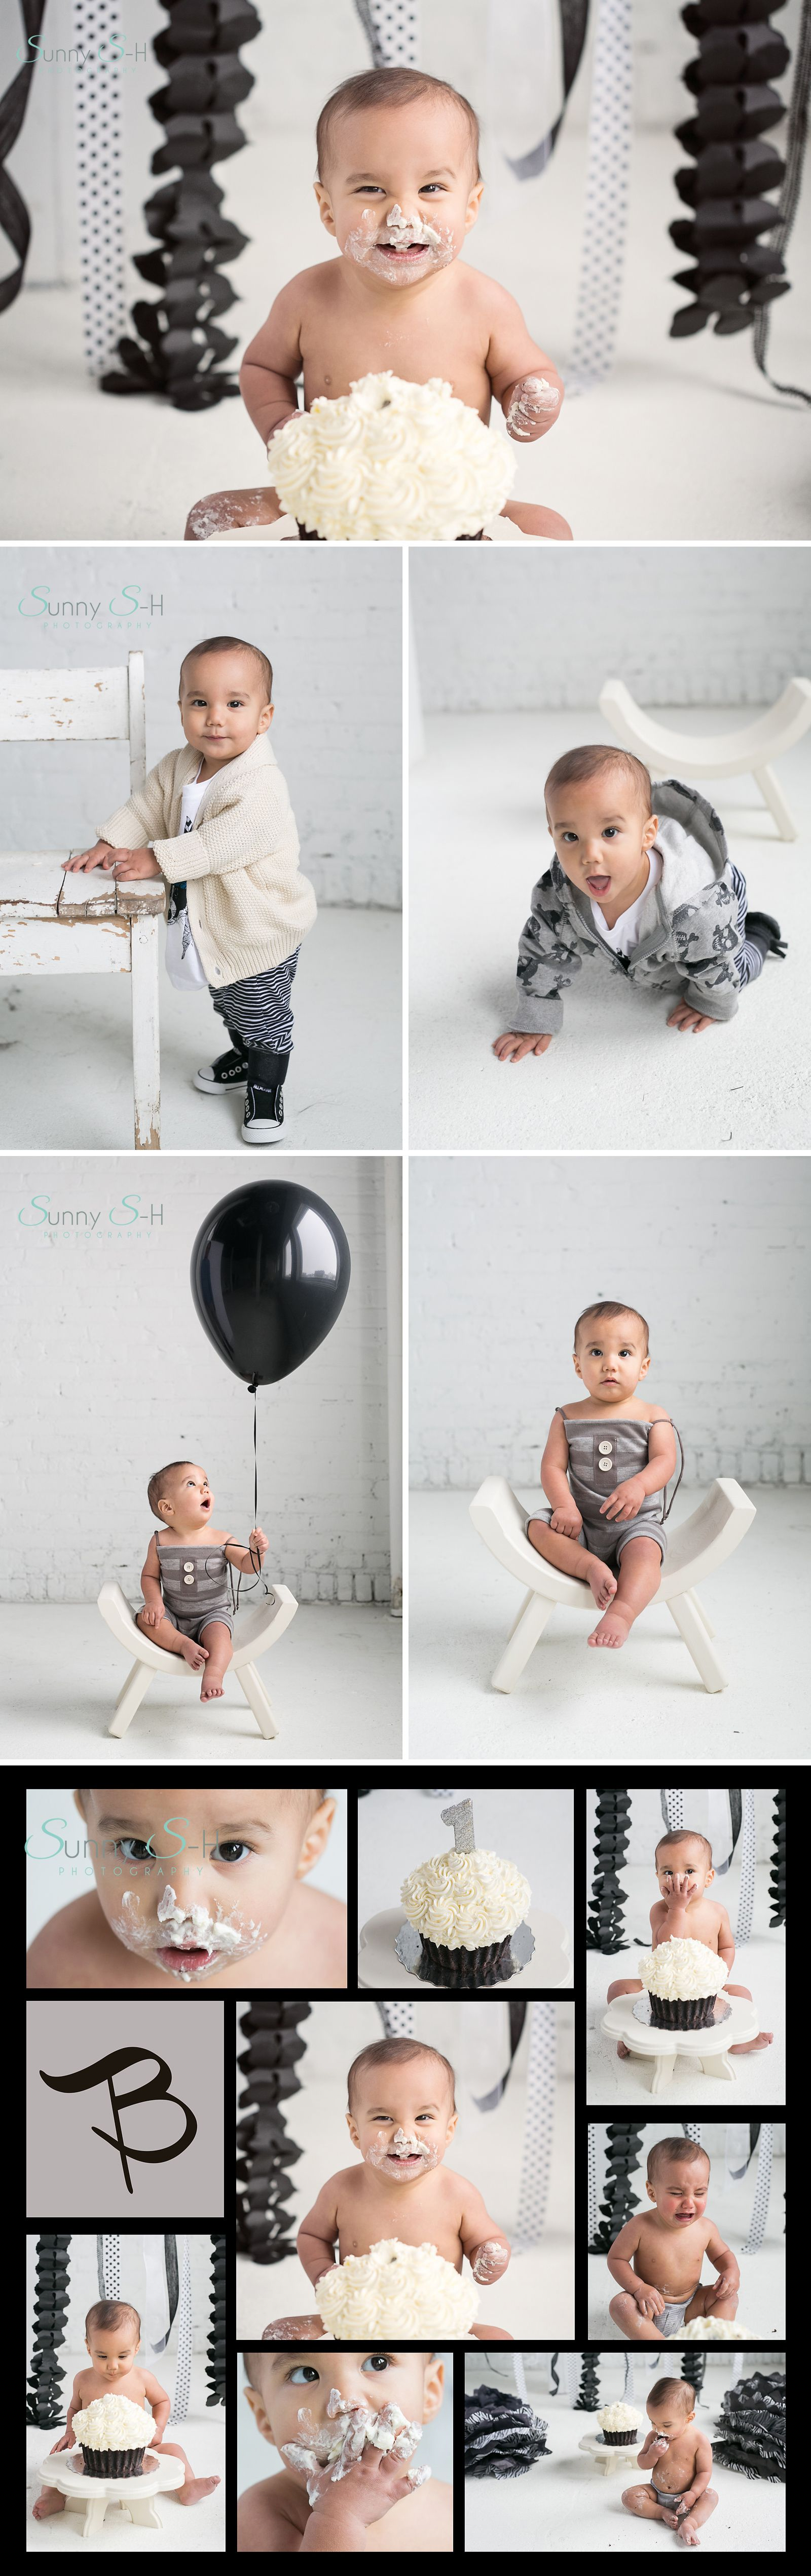 Black and white themed first birthday cake smash session in studio. SO cute!